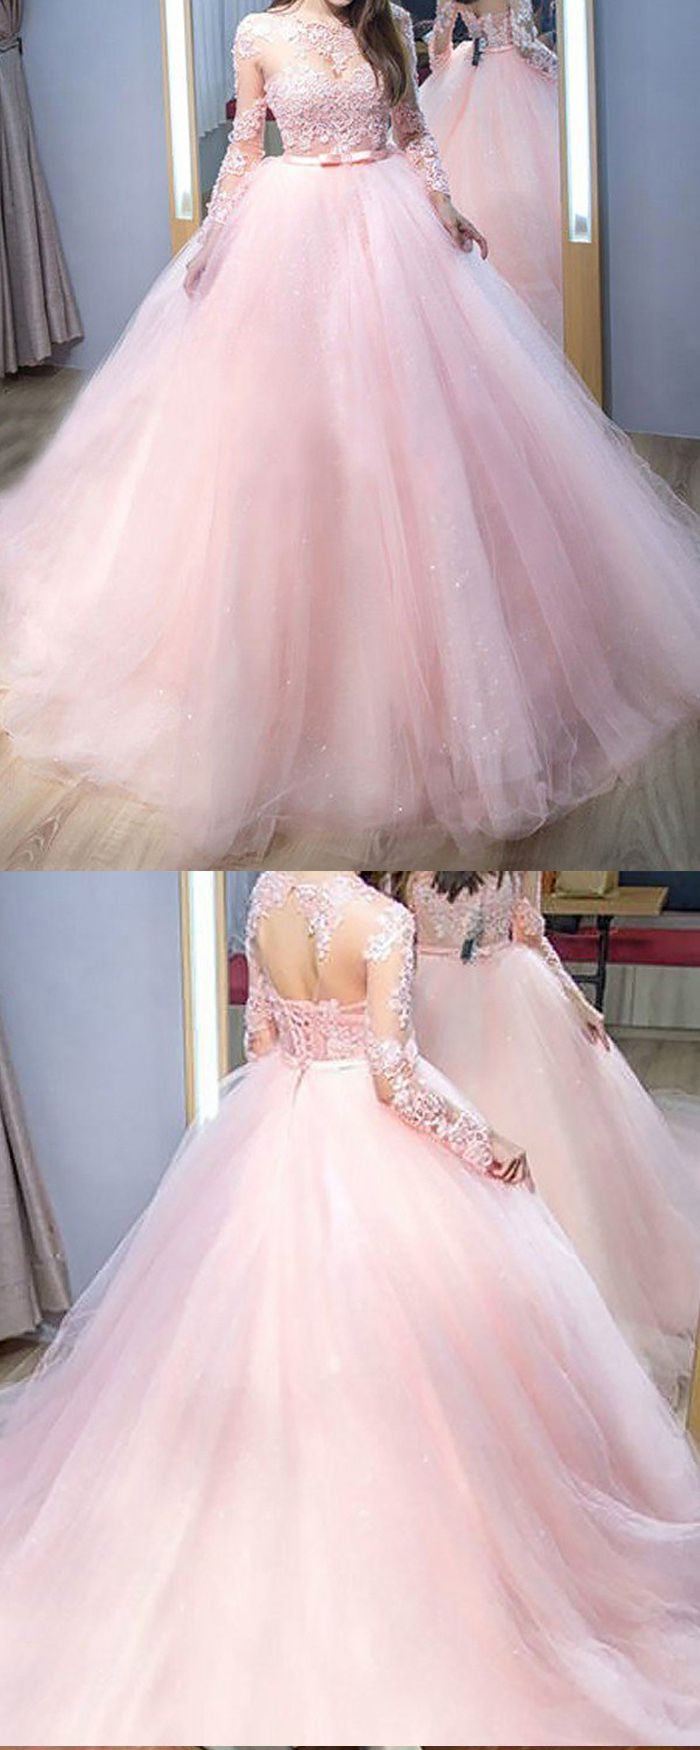 Jewel neck pink lace appliqued tulle ball gown prom dress with long